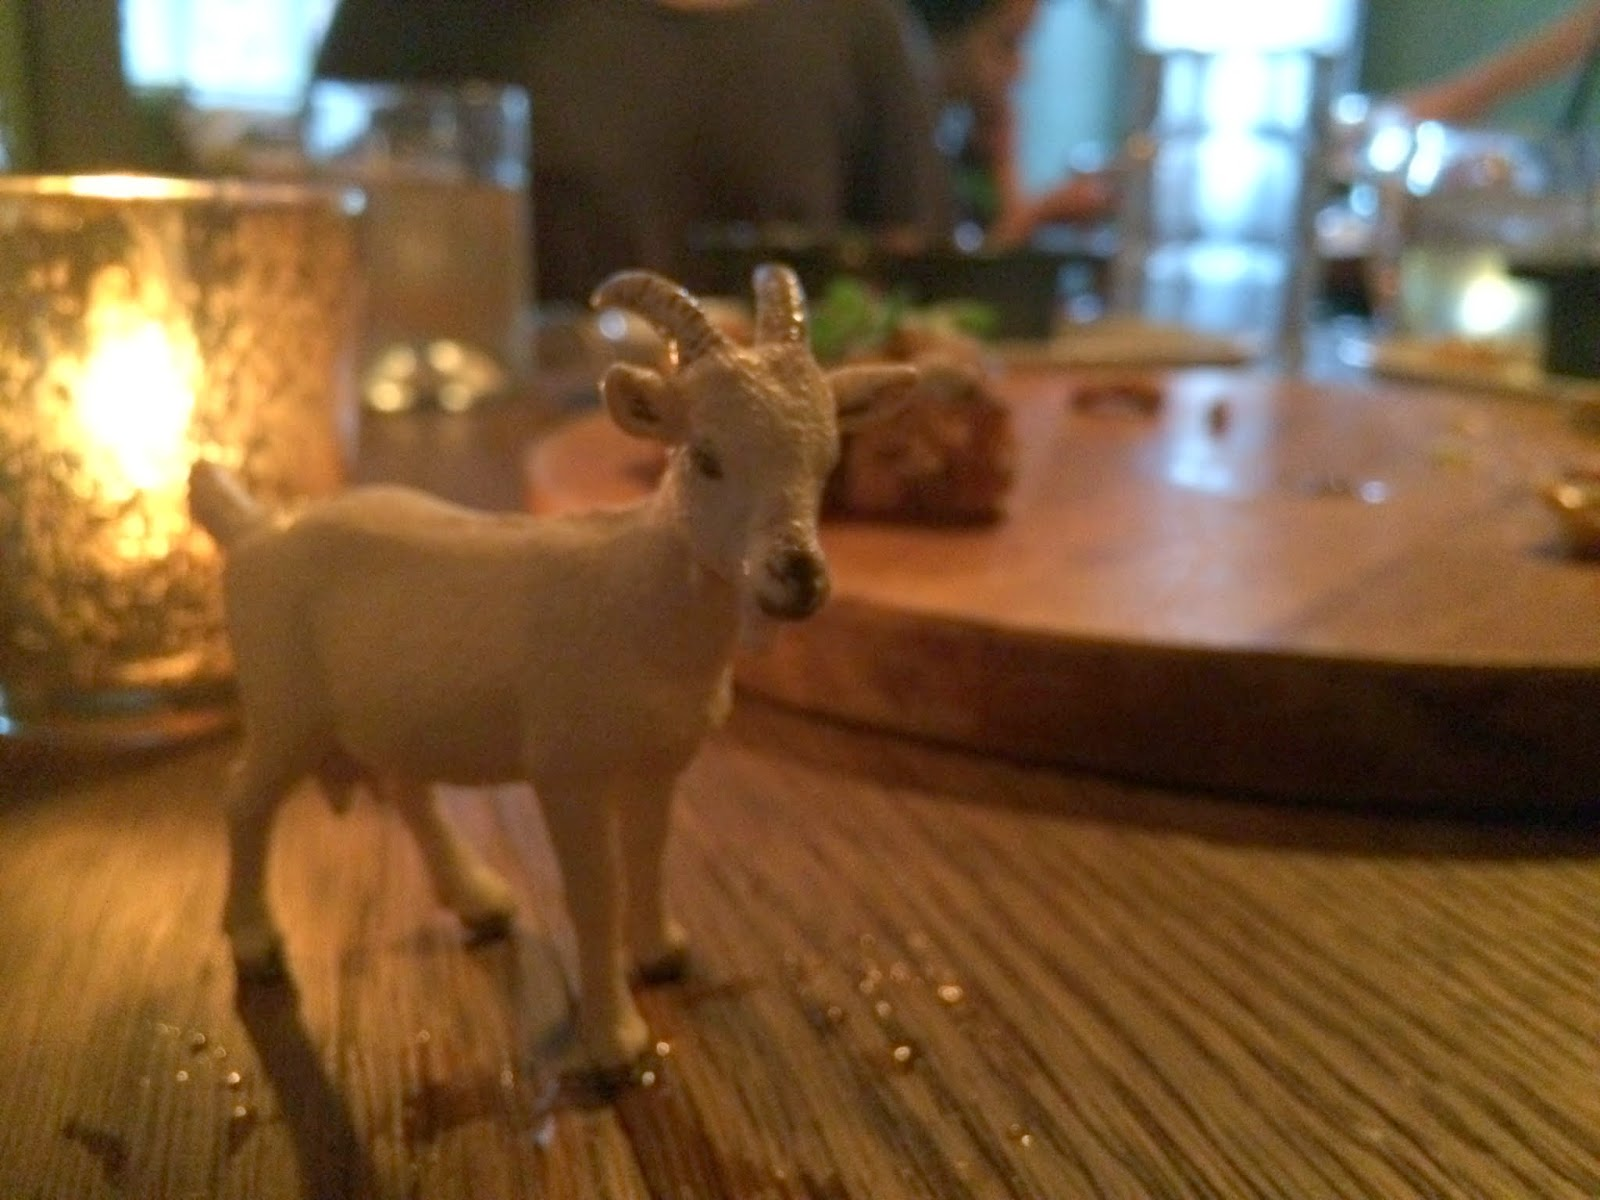 capital cooking lauren desantis first taste the fainting goat i couldn t stop thinking about adam sandler s goat skit this new neighborhood restaurant has a spring menu seasonal flavors that will blow you away